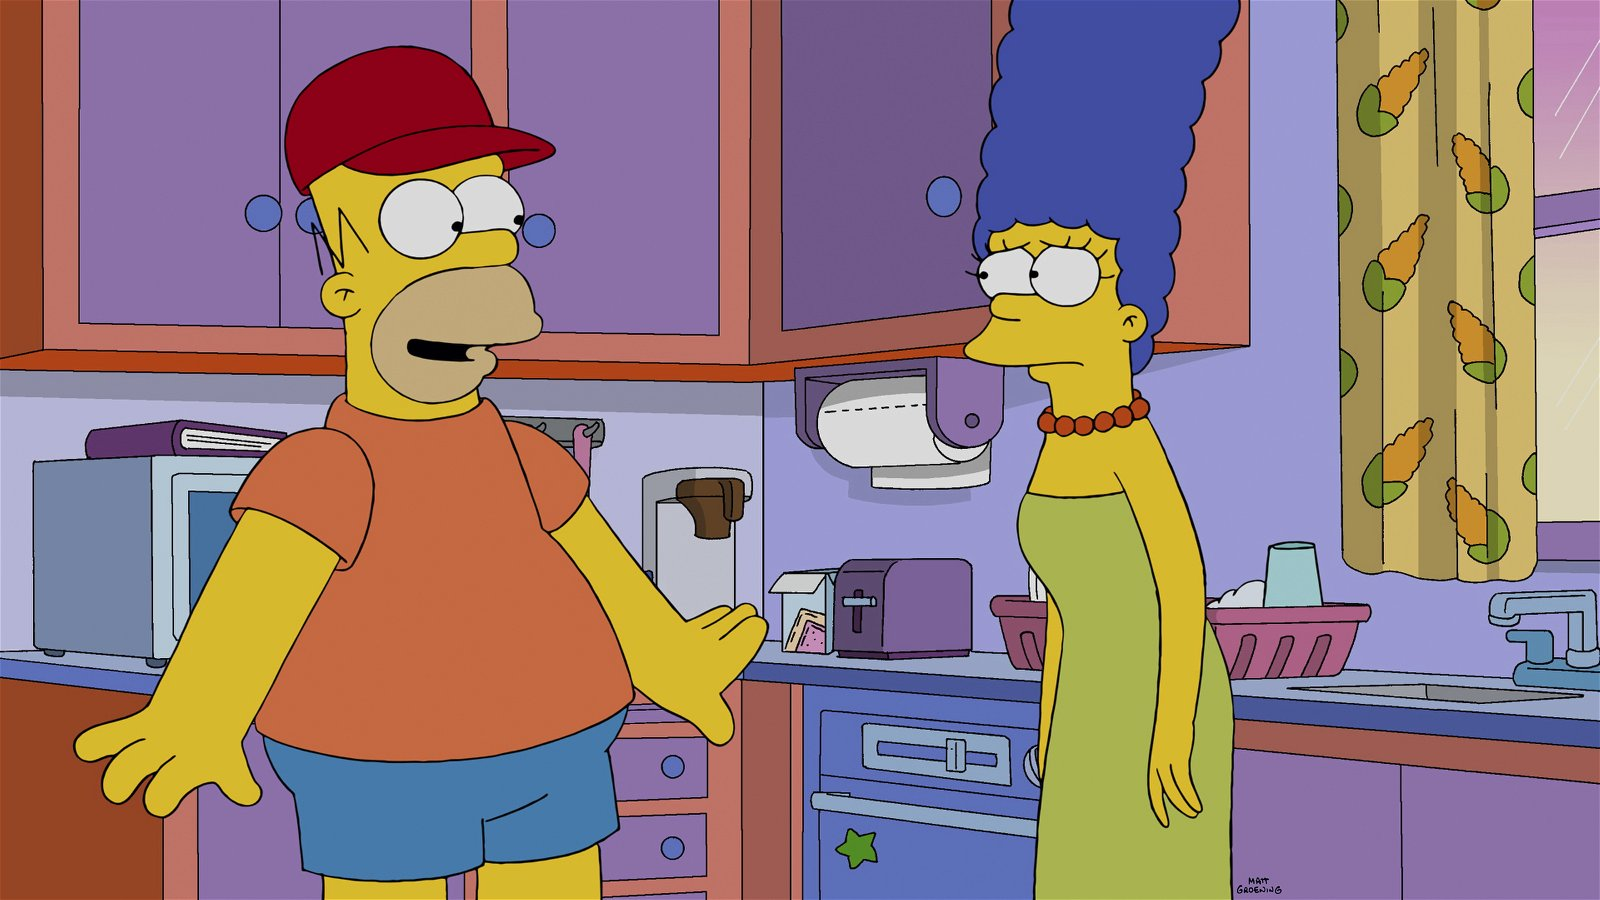 "THE SIMPSONS: Marge must adapt to a new Homer after he is hypnotized at the circus and believes he is a young boy again in the all-new ""Bart's New Friend"" episode of THE SIMPSONS airing Sunday, Jan. 11 (8:00-8:30 PM ET/PT) on FOX. THE SIMPSONS ª and © 2014 TCFFC ALL RIGHTS RESERVED."